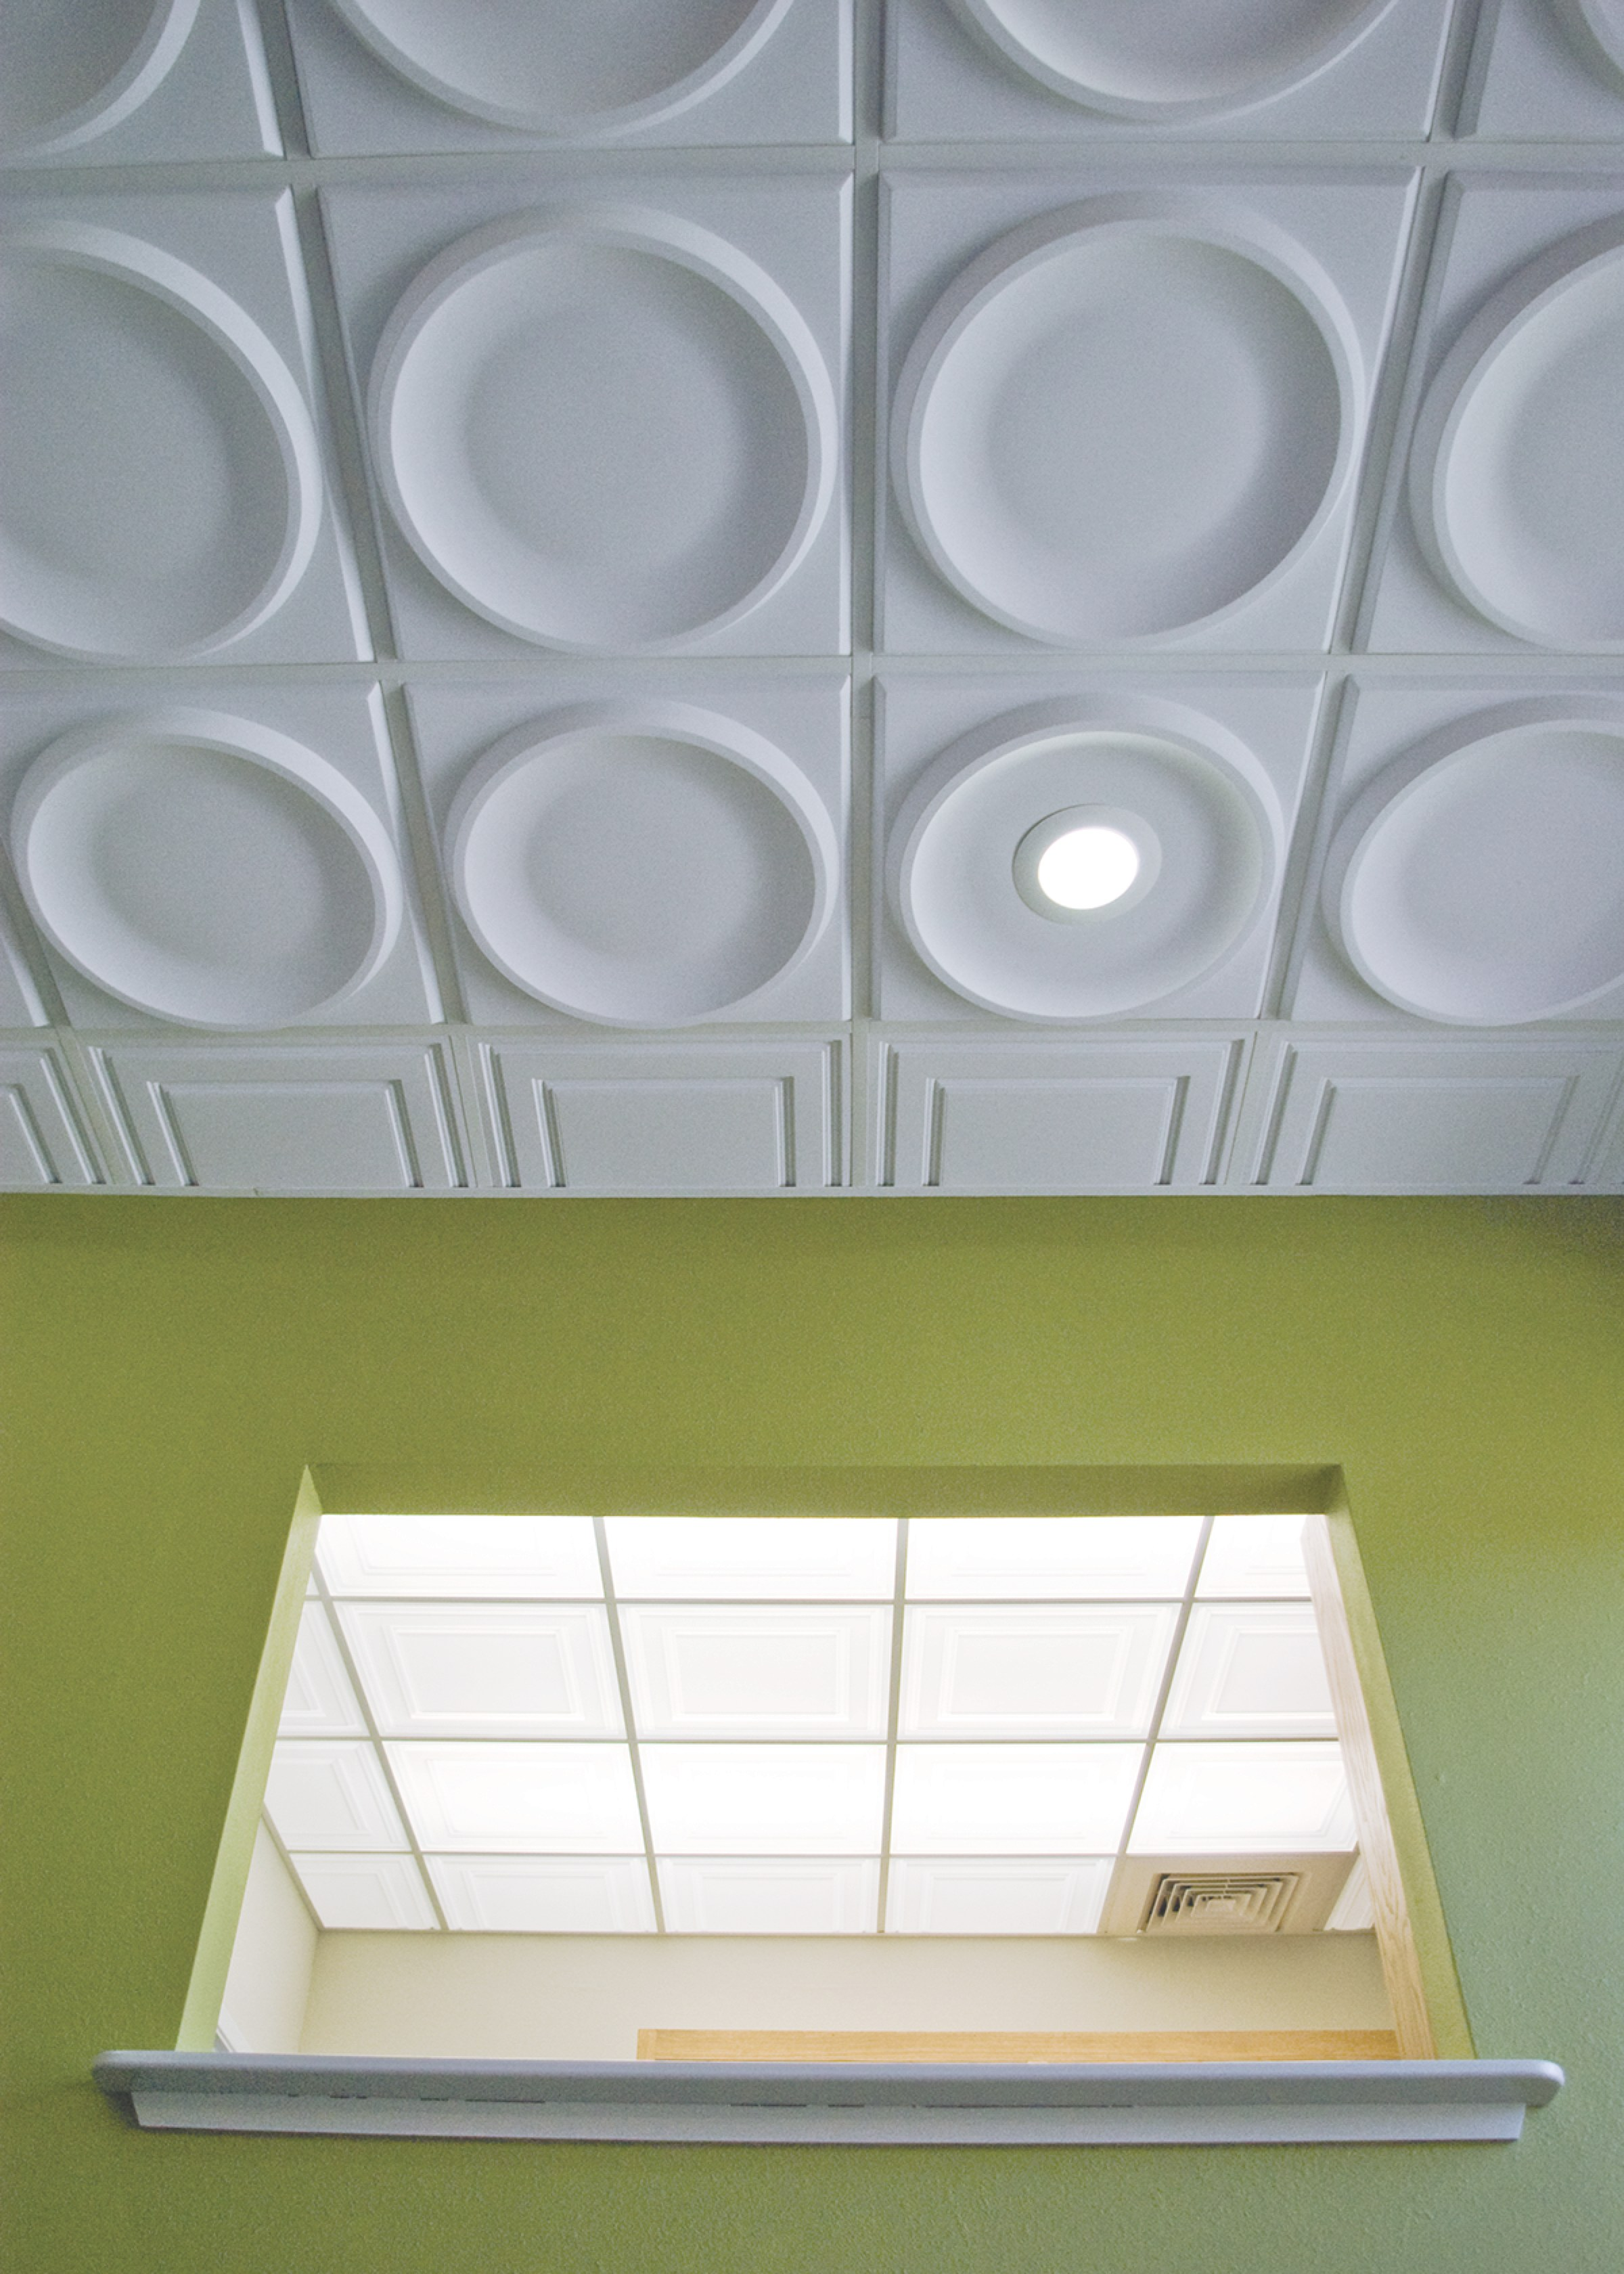 Hung ceiling tiles